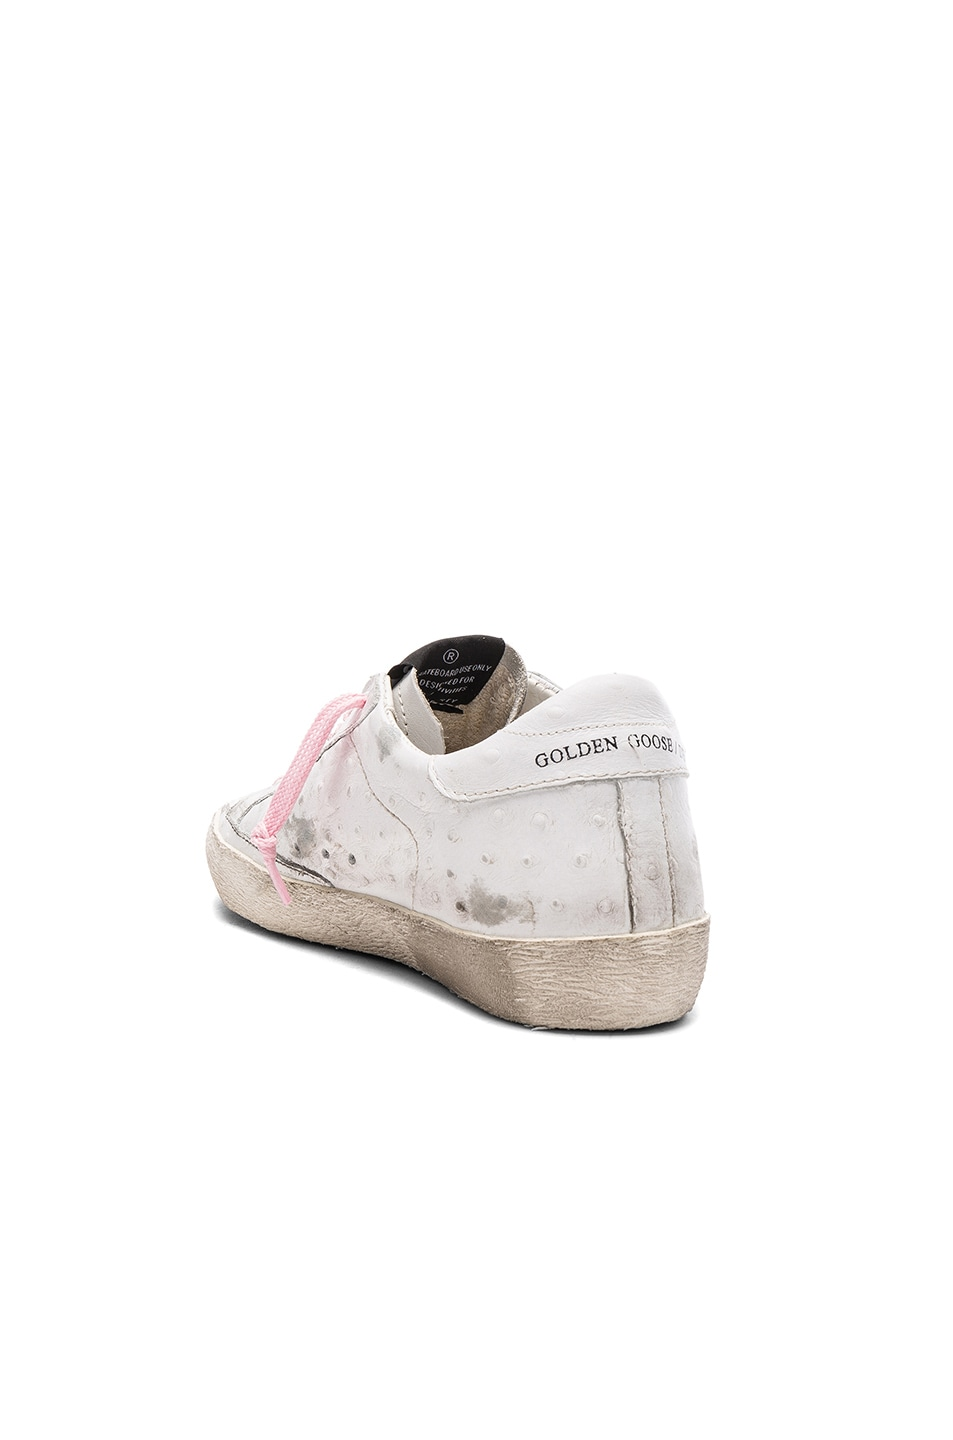 Image 3 of Golden Goose Leather Superstar Low Sneakers in White & Pink